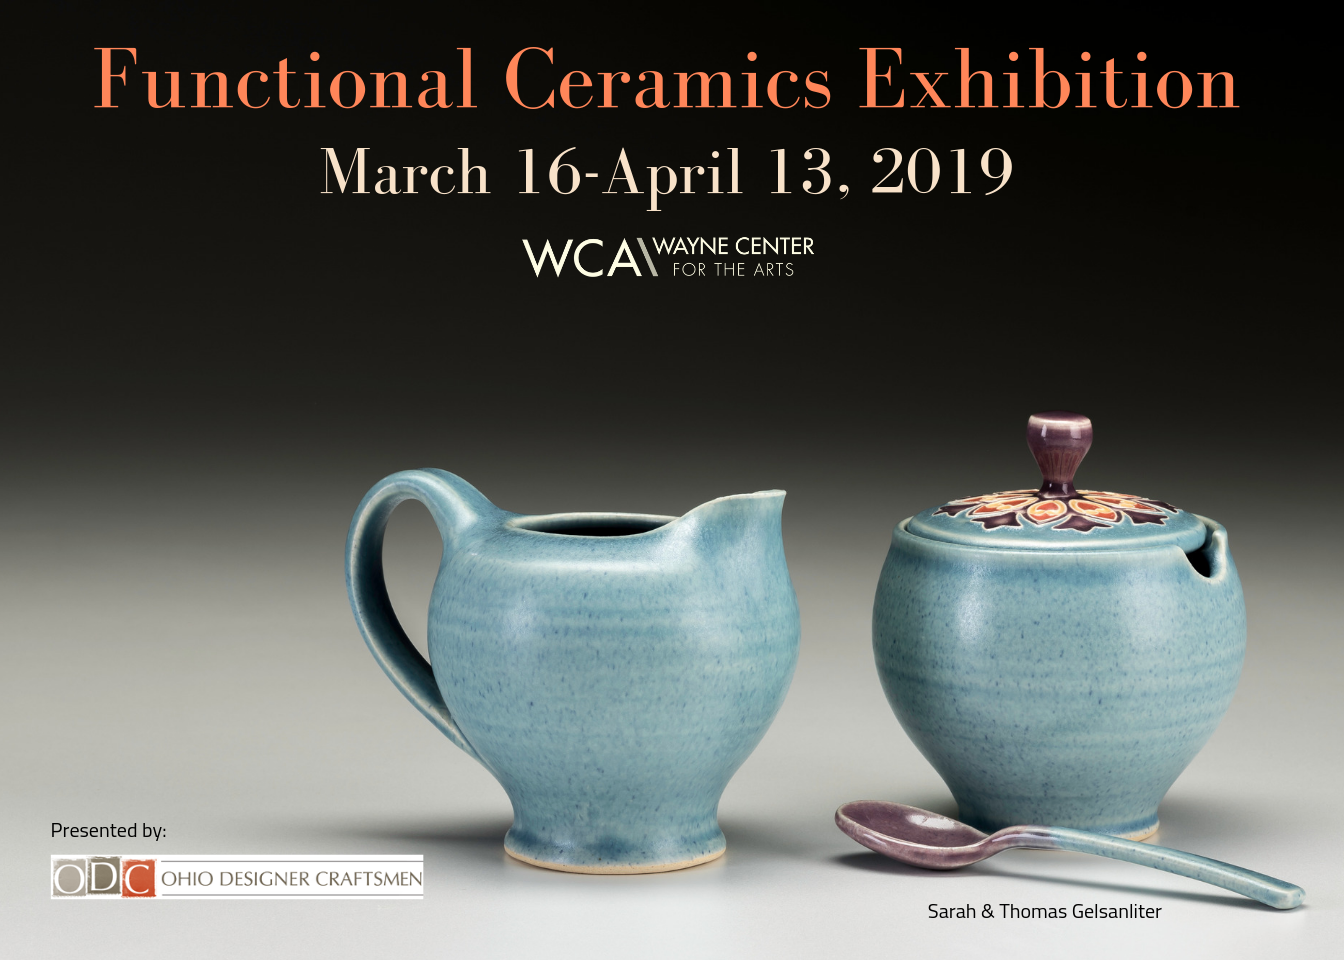 Functional Ceramics Exhibition